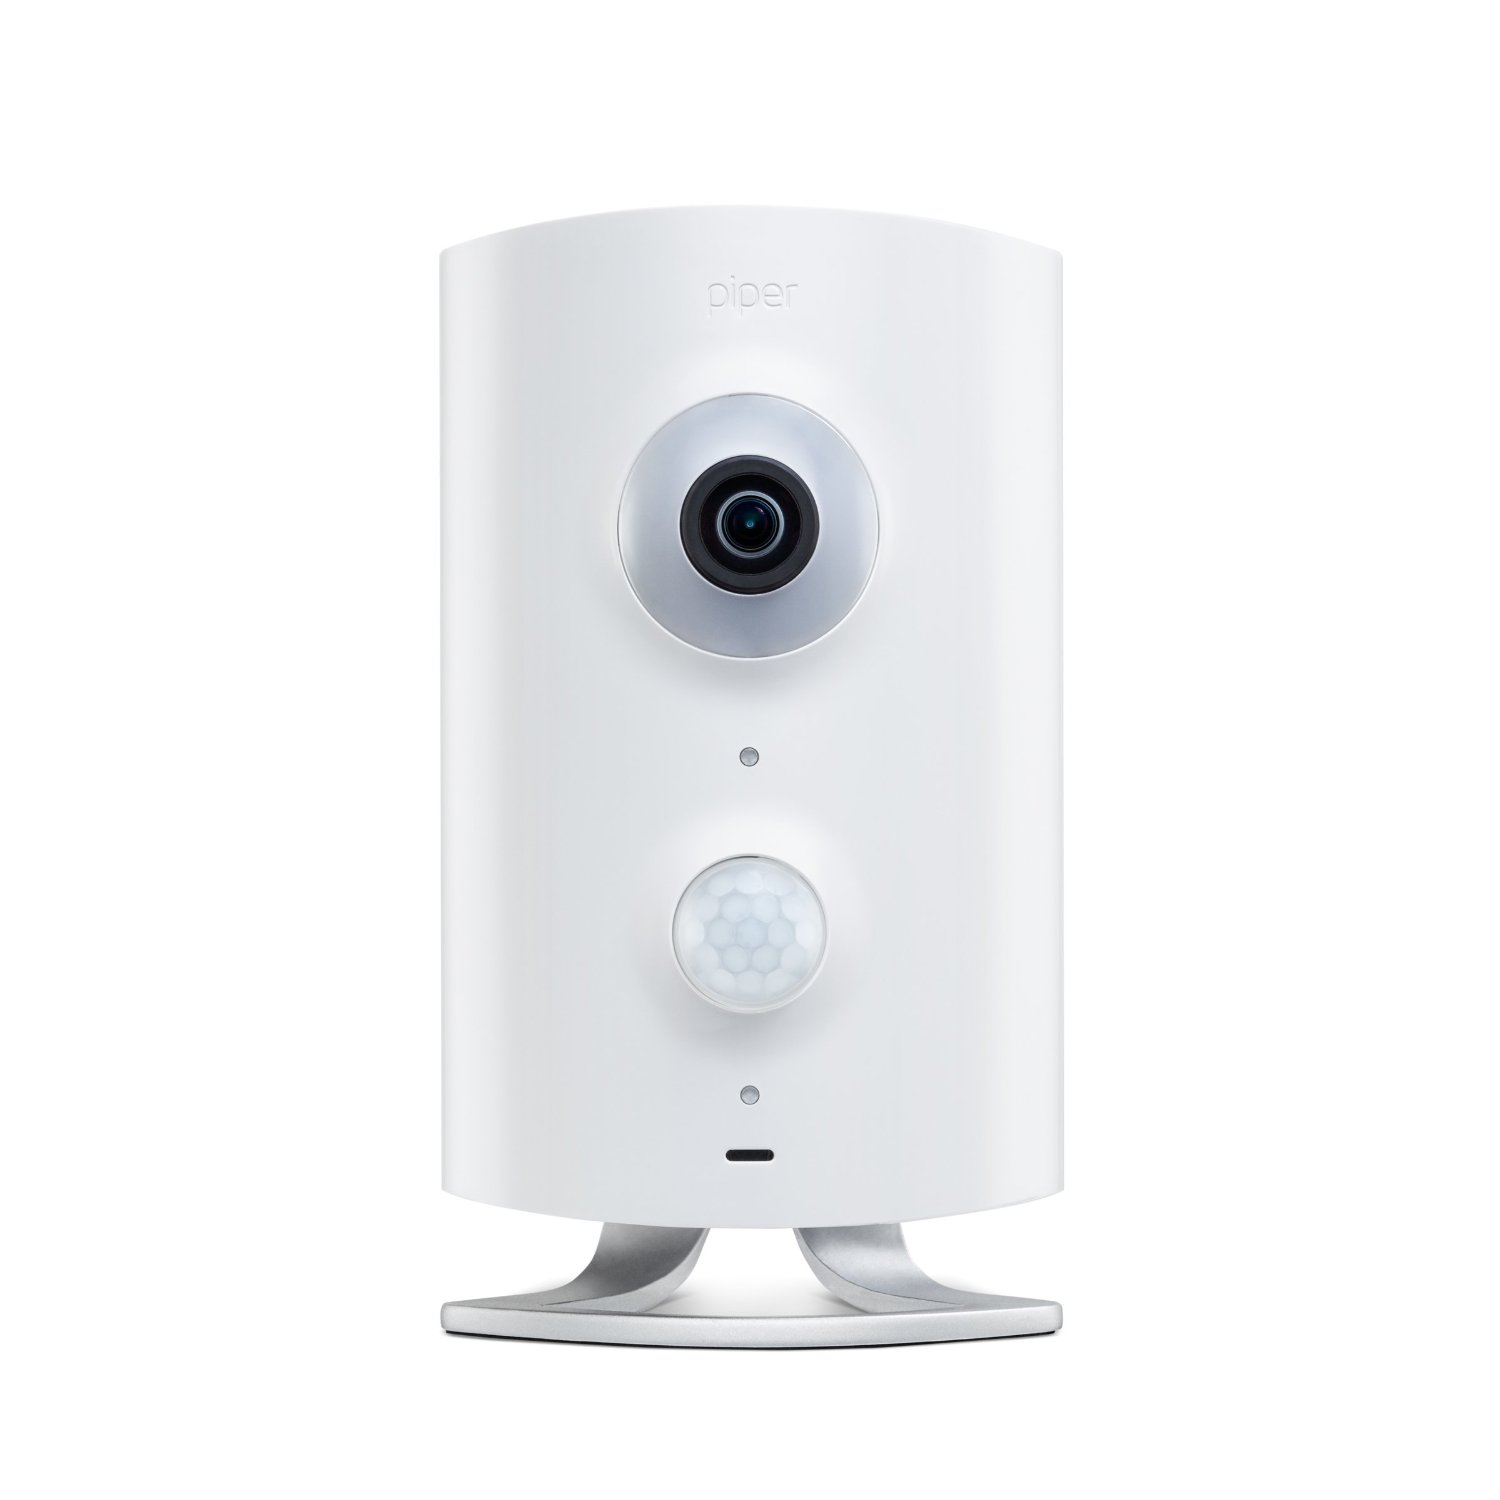 Piper nv Smart Home Security System with Night Vision